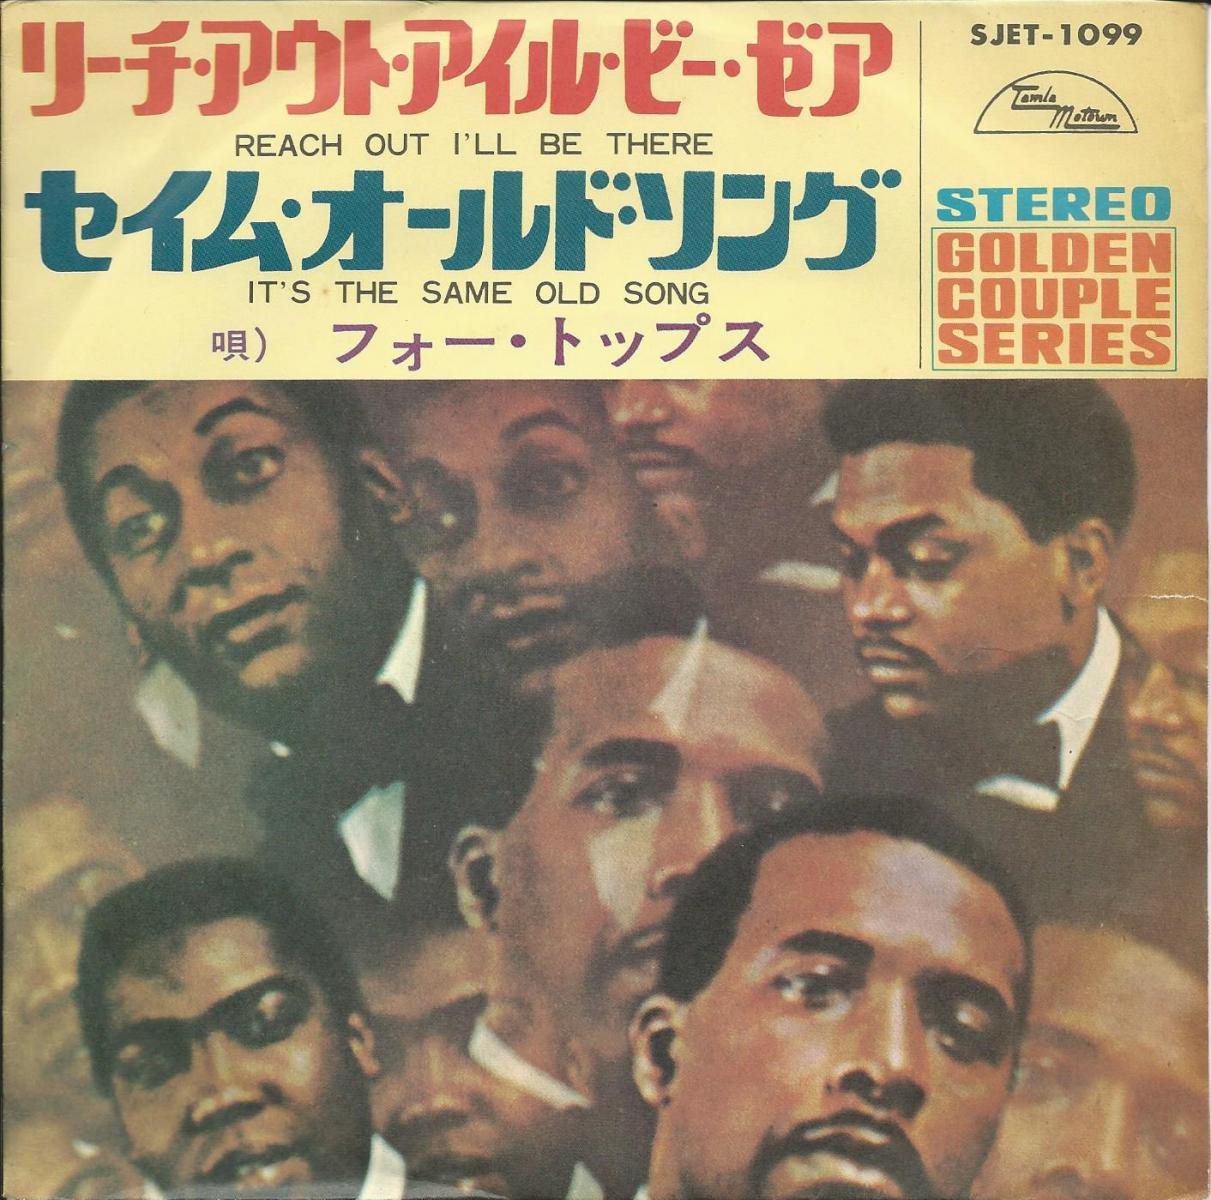 FOUR TOPS フォー・トップス / REACH OUT I'LL BE THERE リーチ・アウト・アイル・ビー・ゼア (7